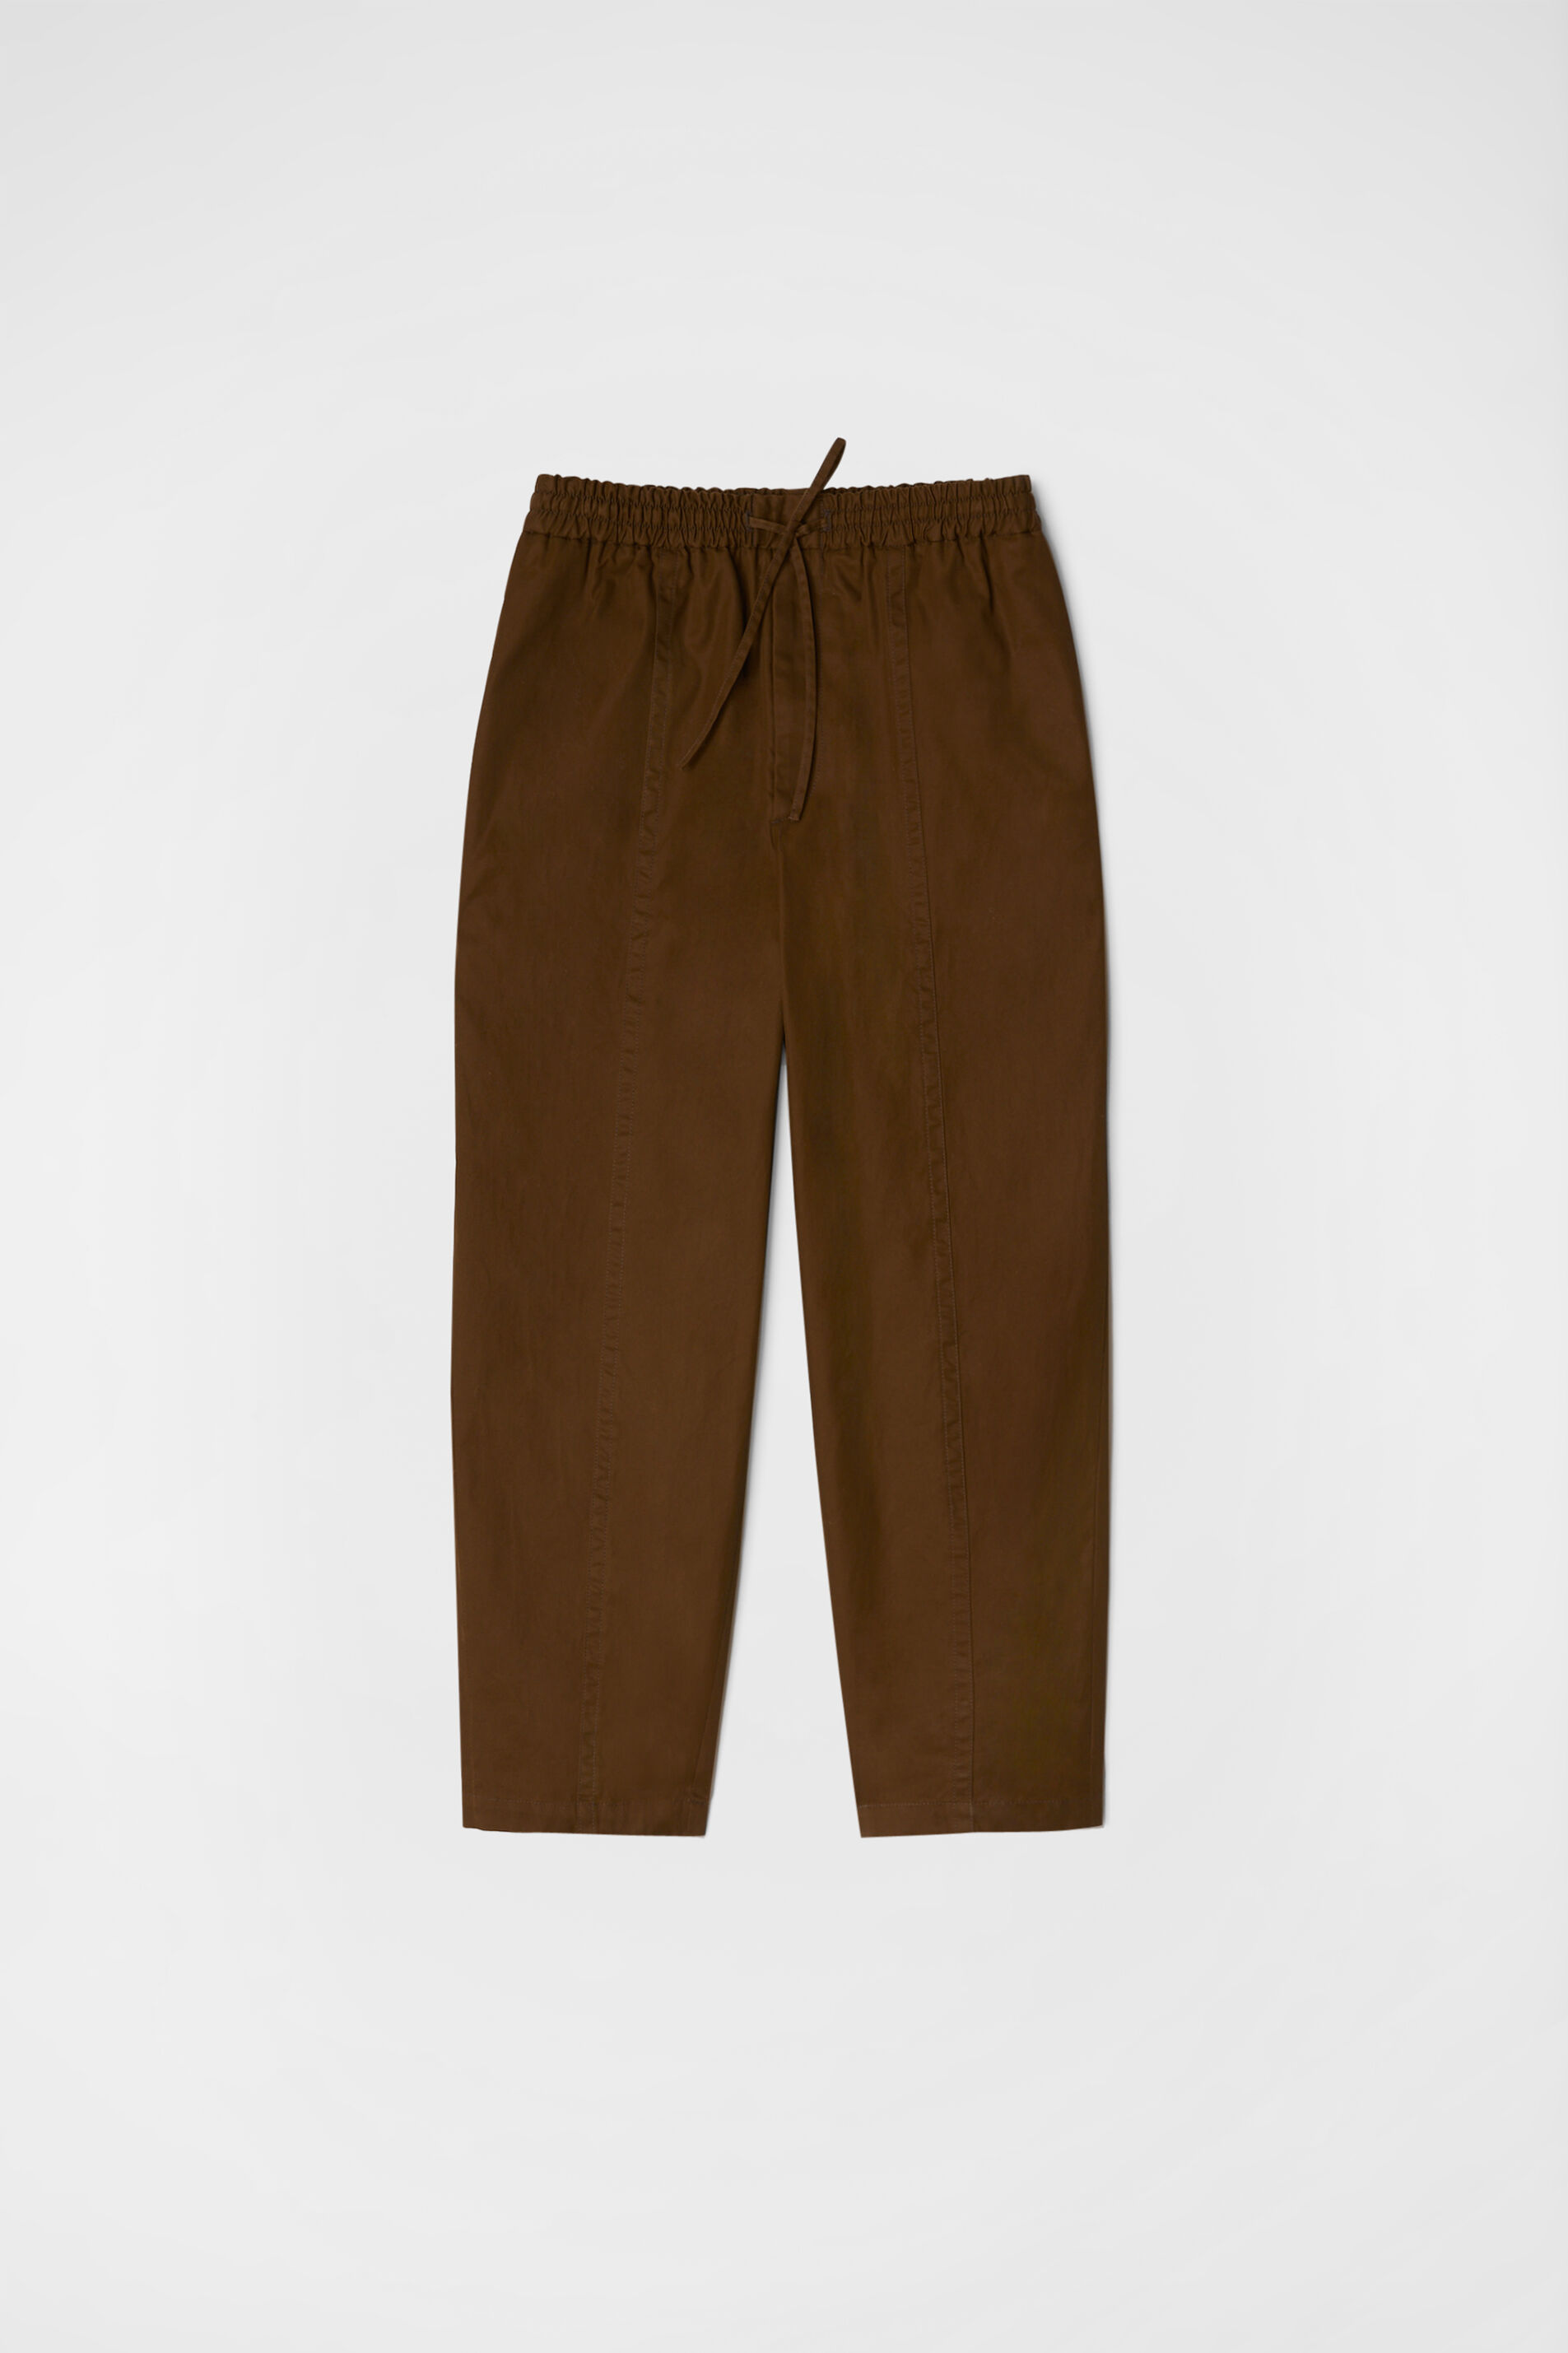 Trousers, green, large